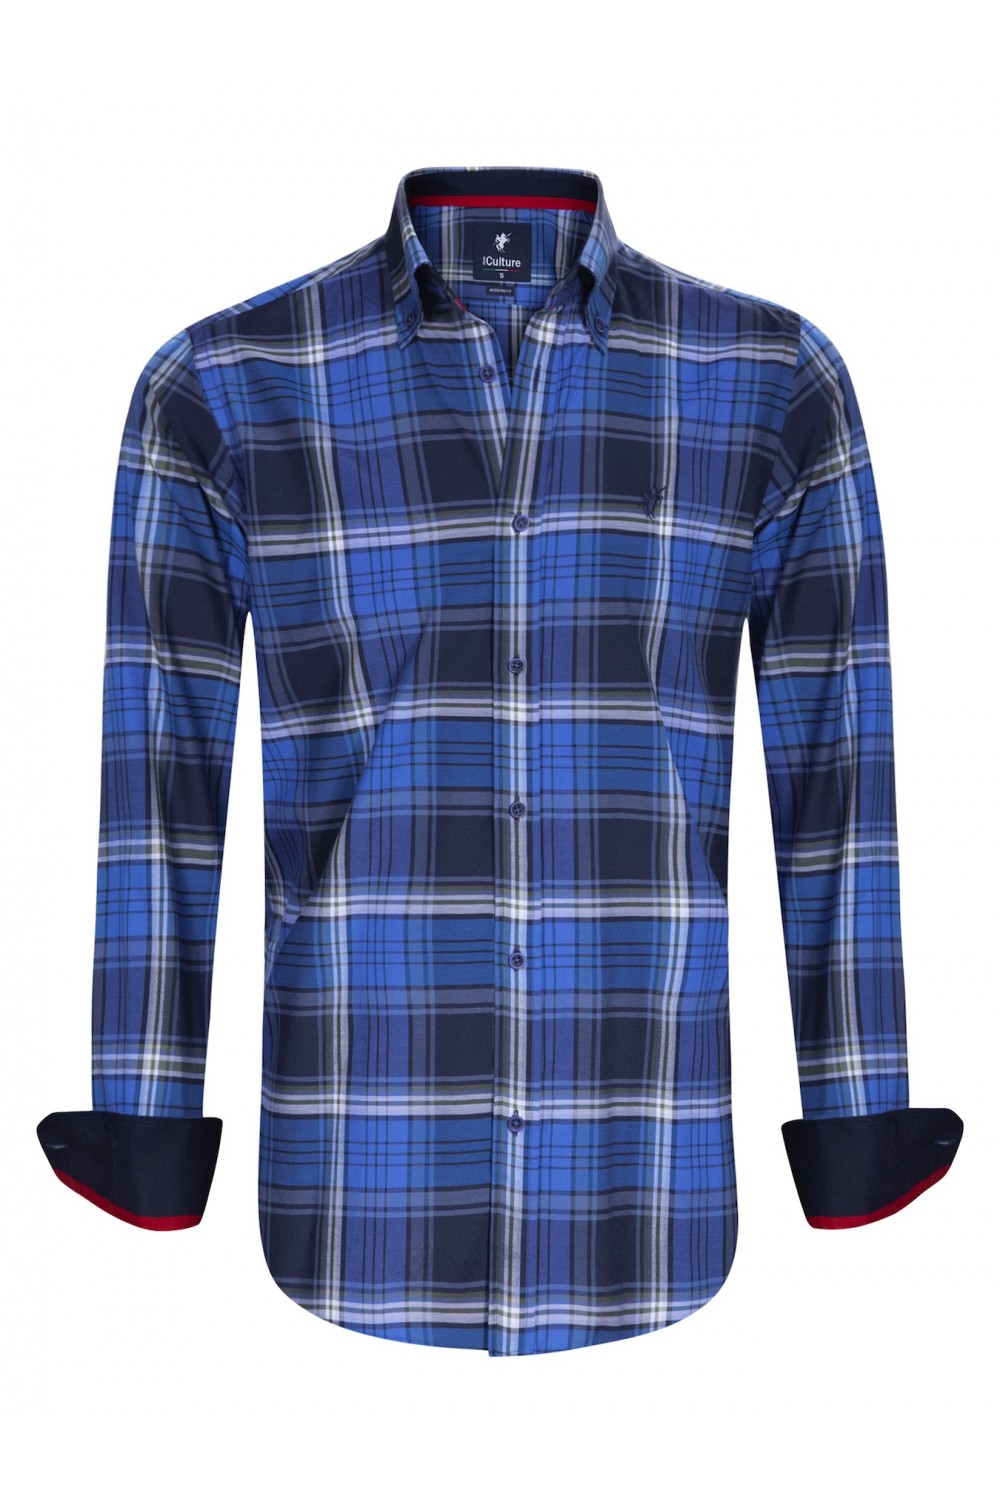 Men's Shirt Button Down Royal Checked